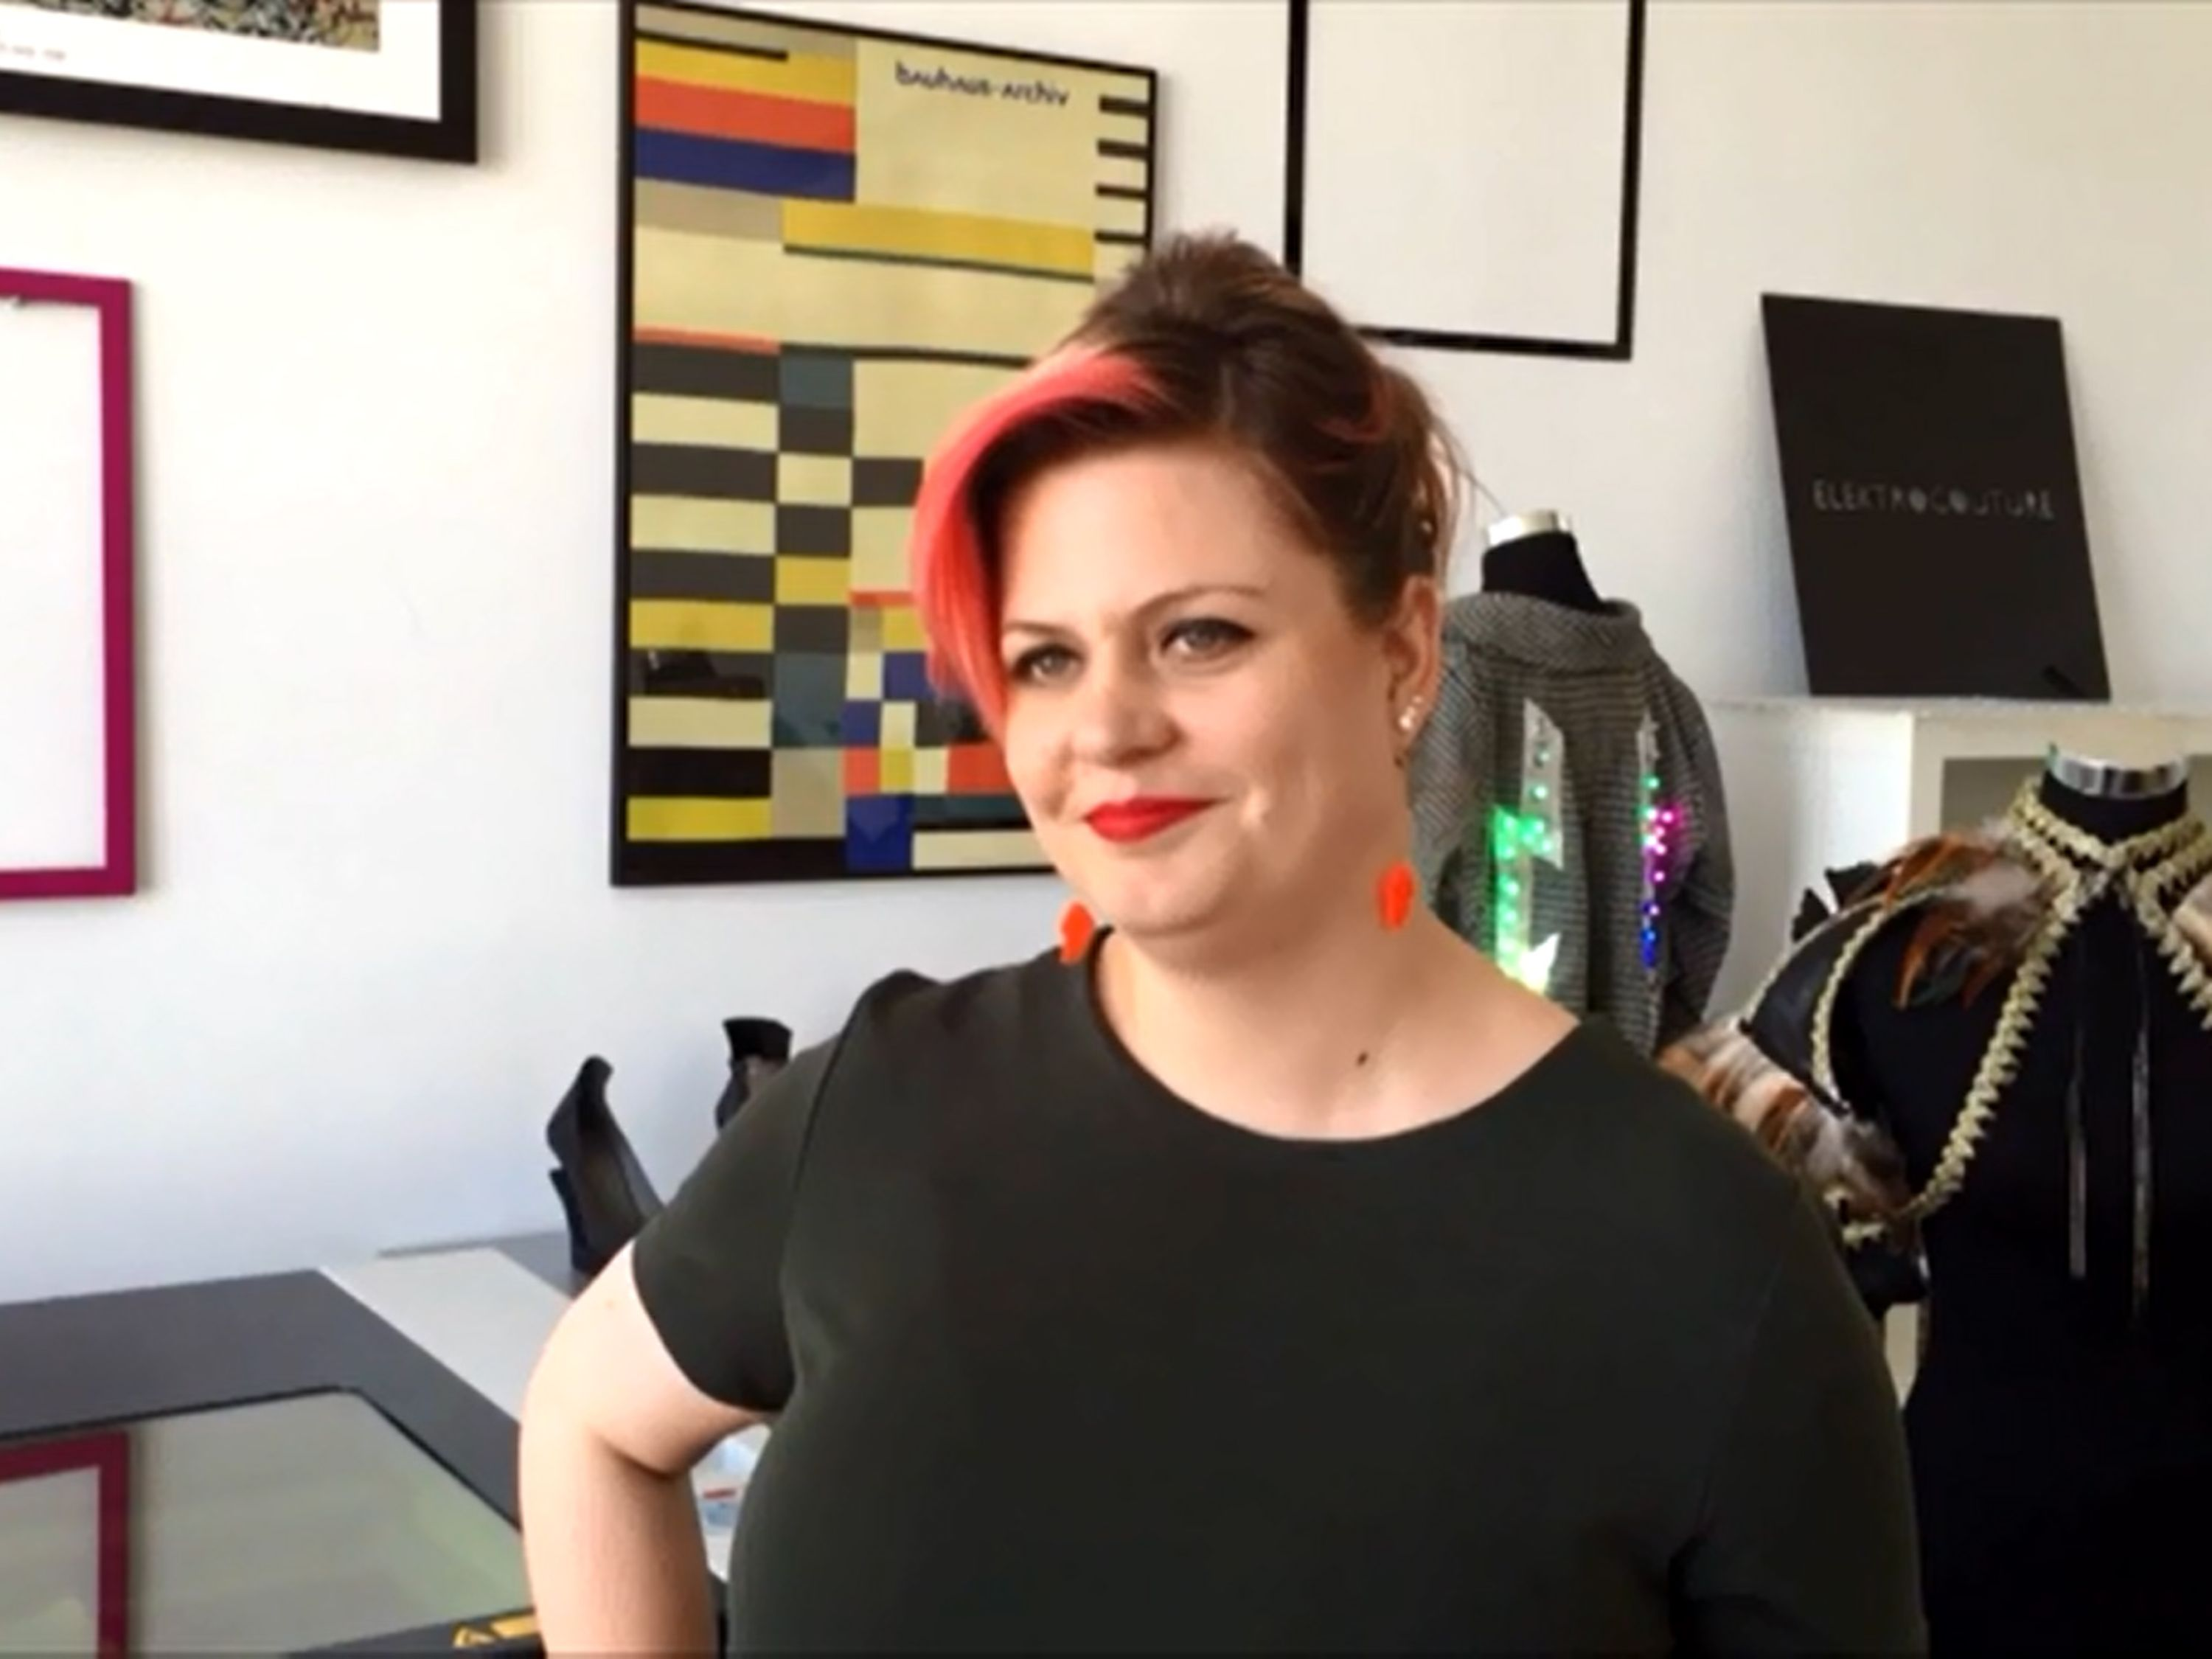 Lisa Lang, Designer, Founder and CEO of ElektroCouture.